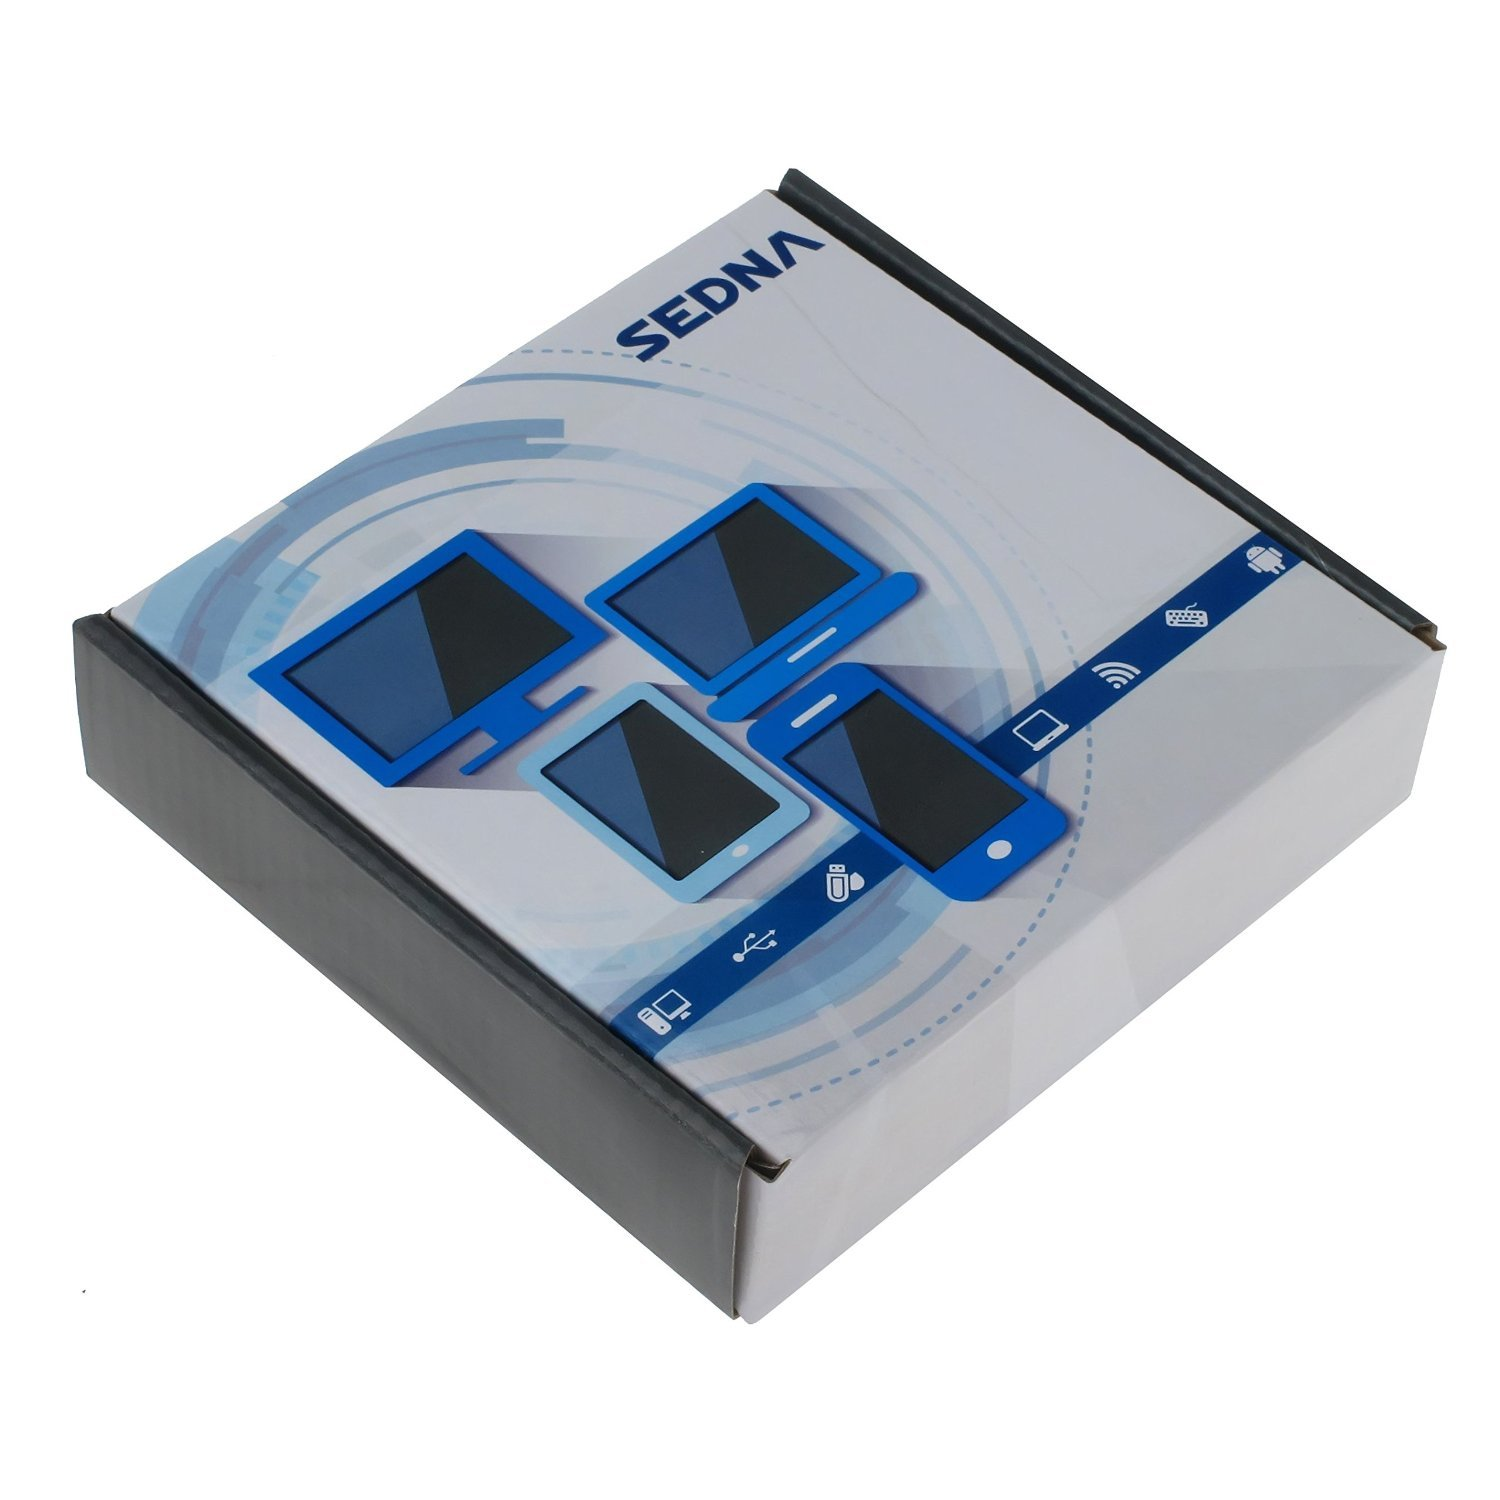 Sedna - PCI Express USB 3.0 7 Port Adapter (Support Win 8 Uasp, Super Fast Speed), SATA Power connector by Sedna (Image #6)